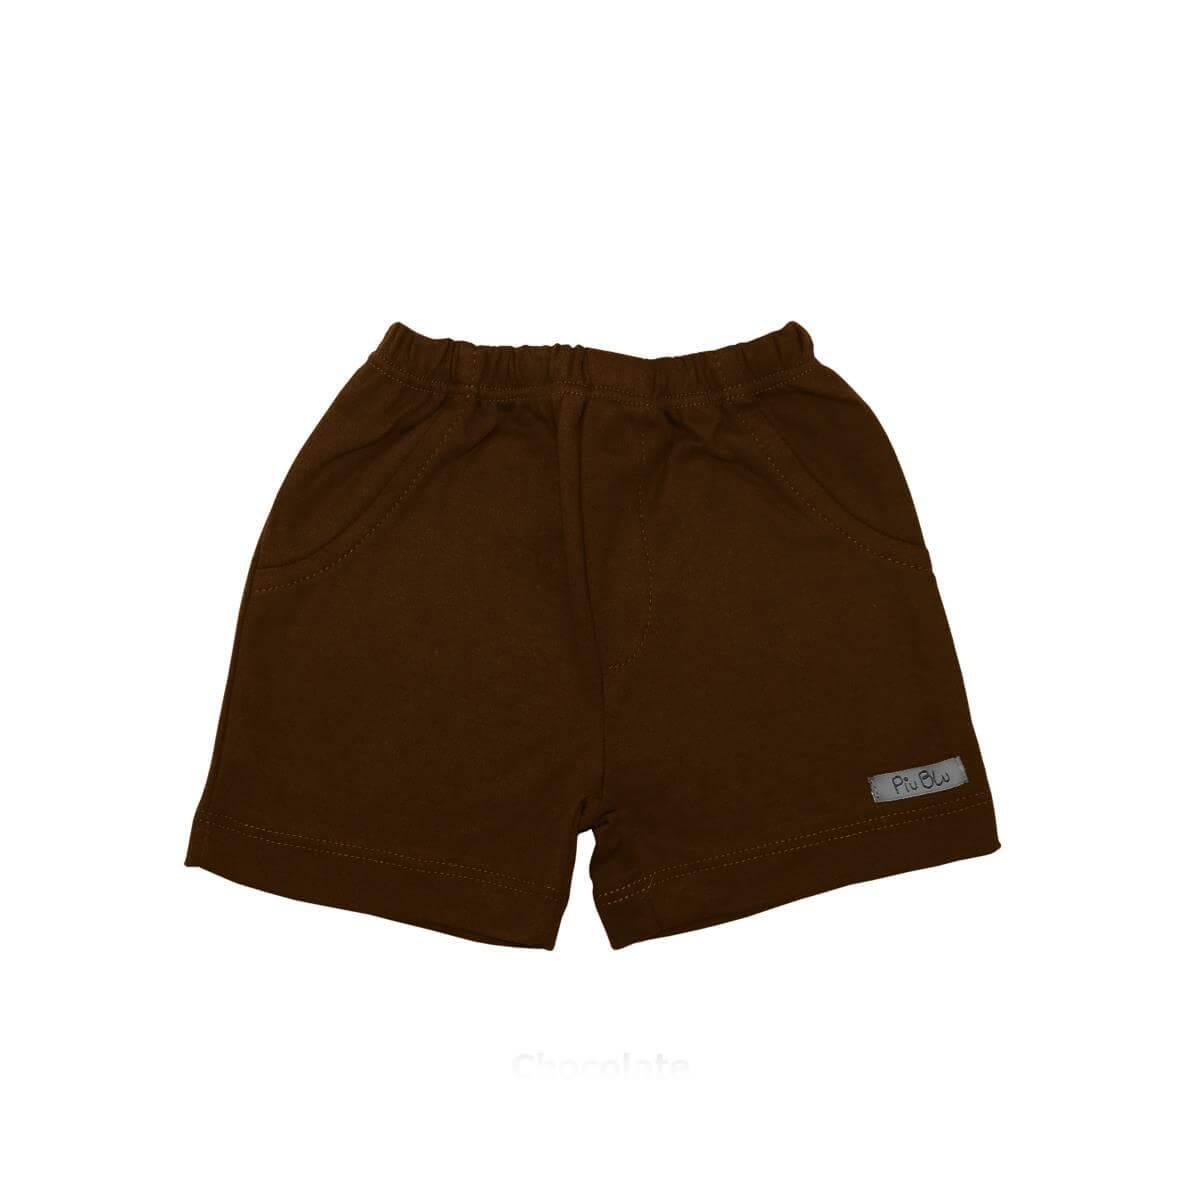 Shorts Masculino 1 ao 4 Chocolate